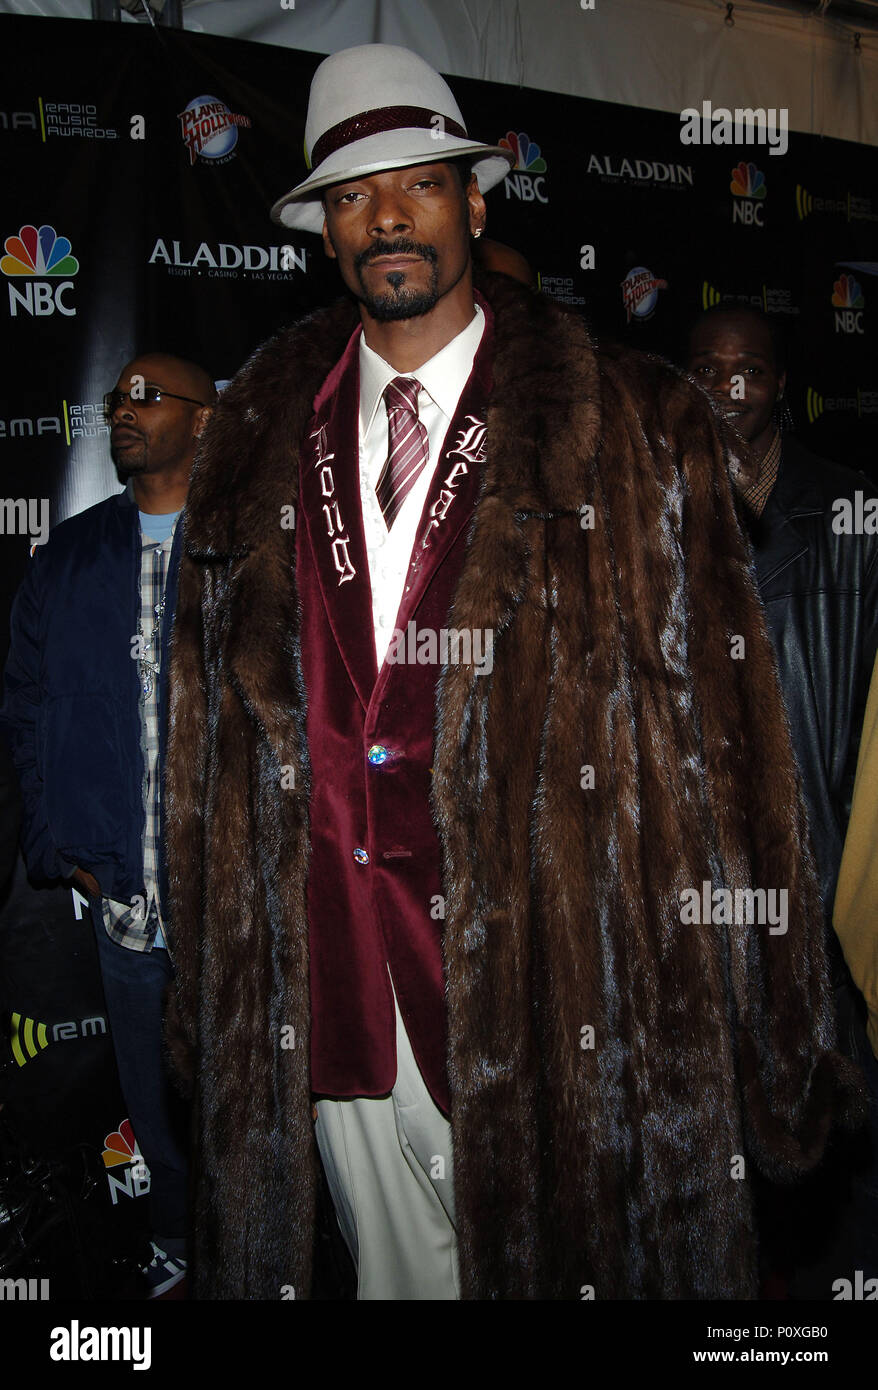 Snoop Dogg arriving at the Radio Music Awards 2005 at the